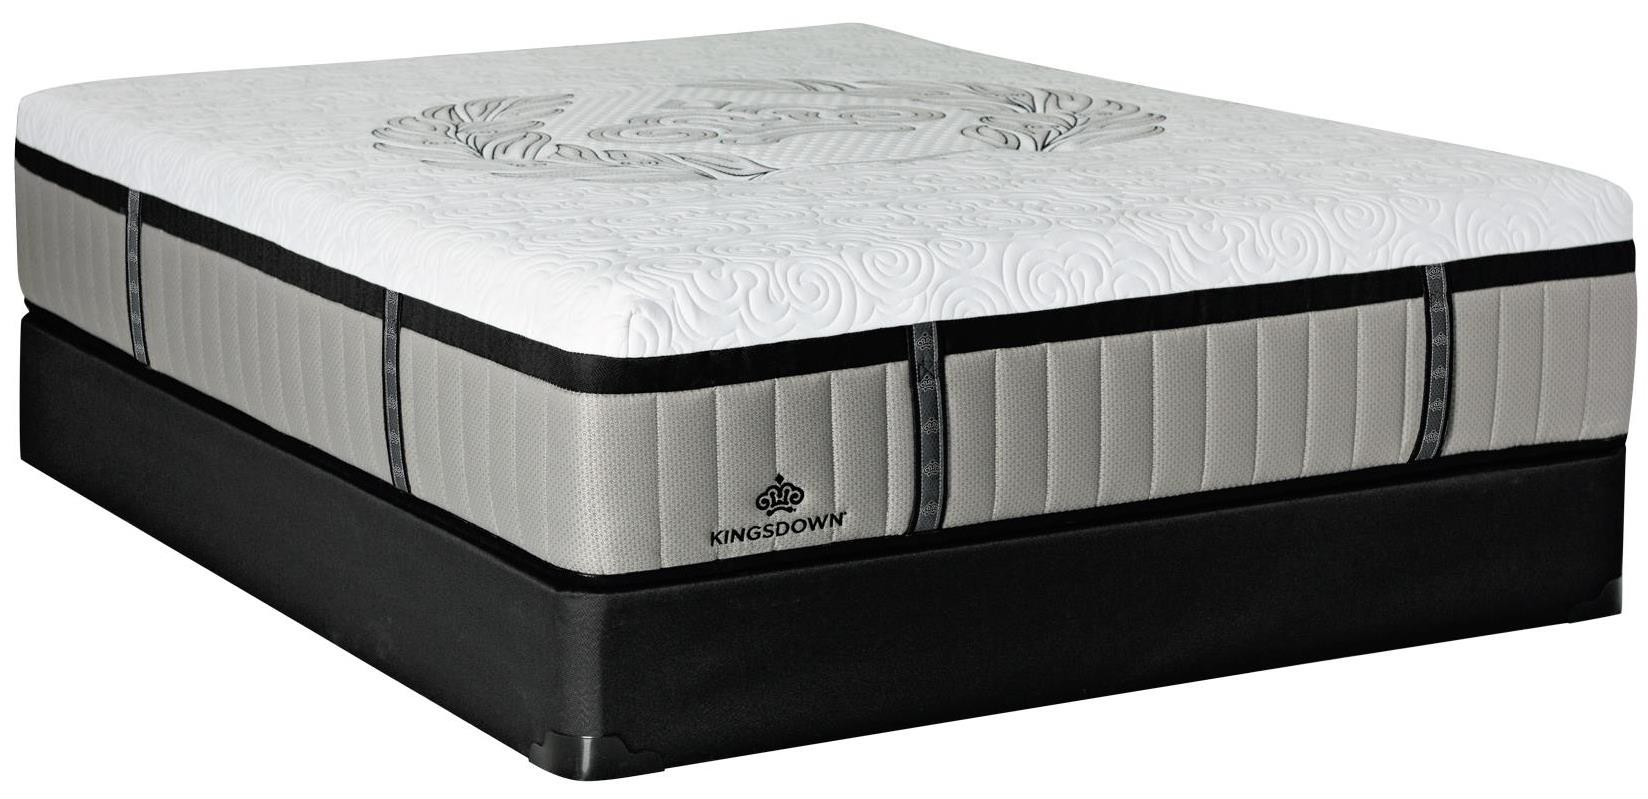 kingsdown archives tag sale canada birthday mattress